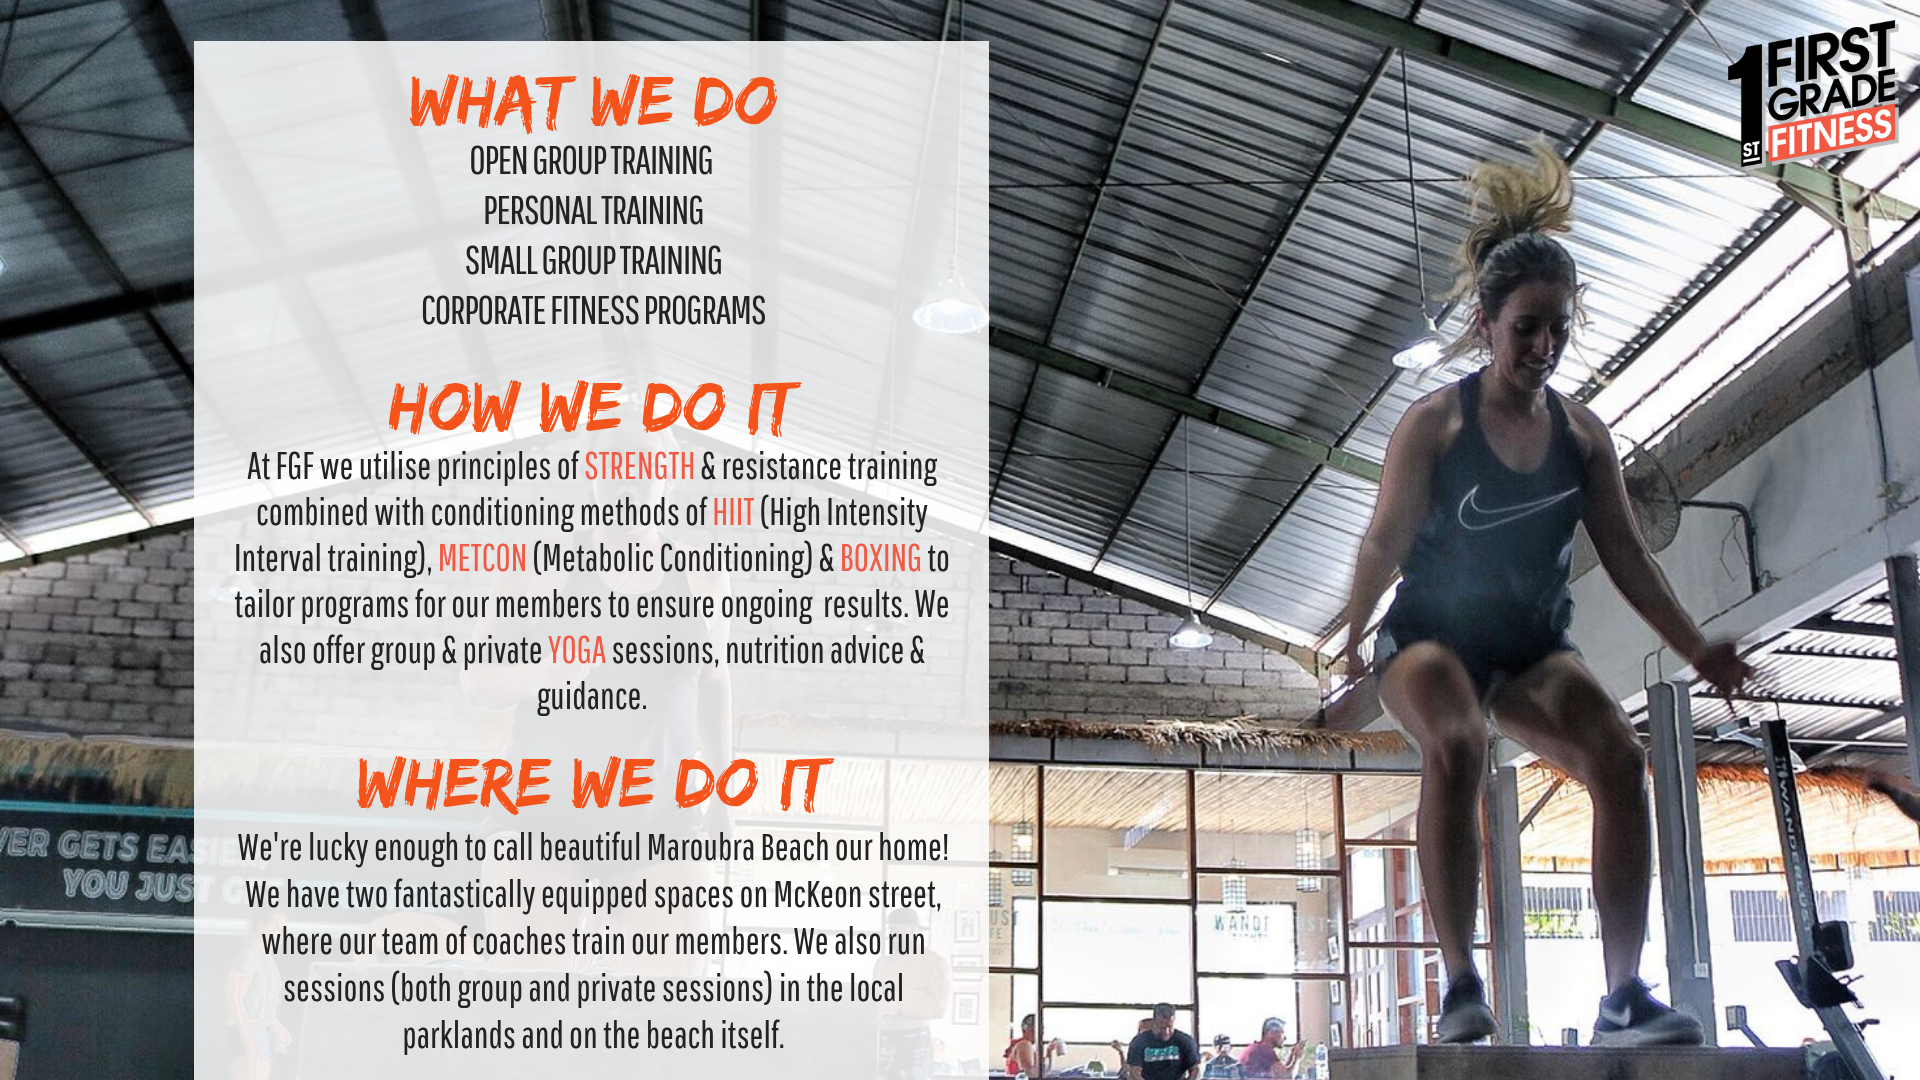 First Grade Fitness Group Personal Training Sydney